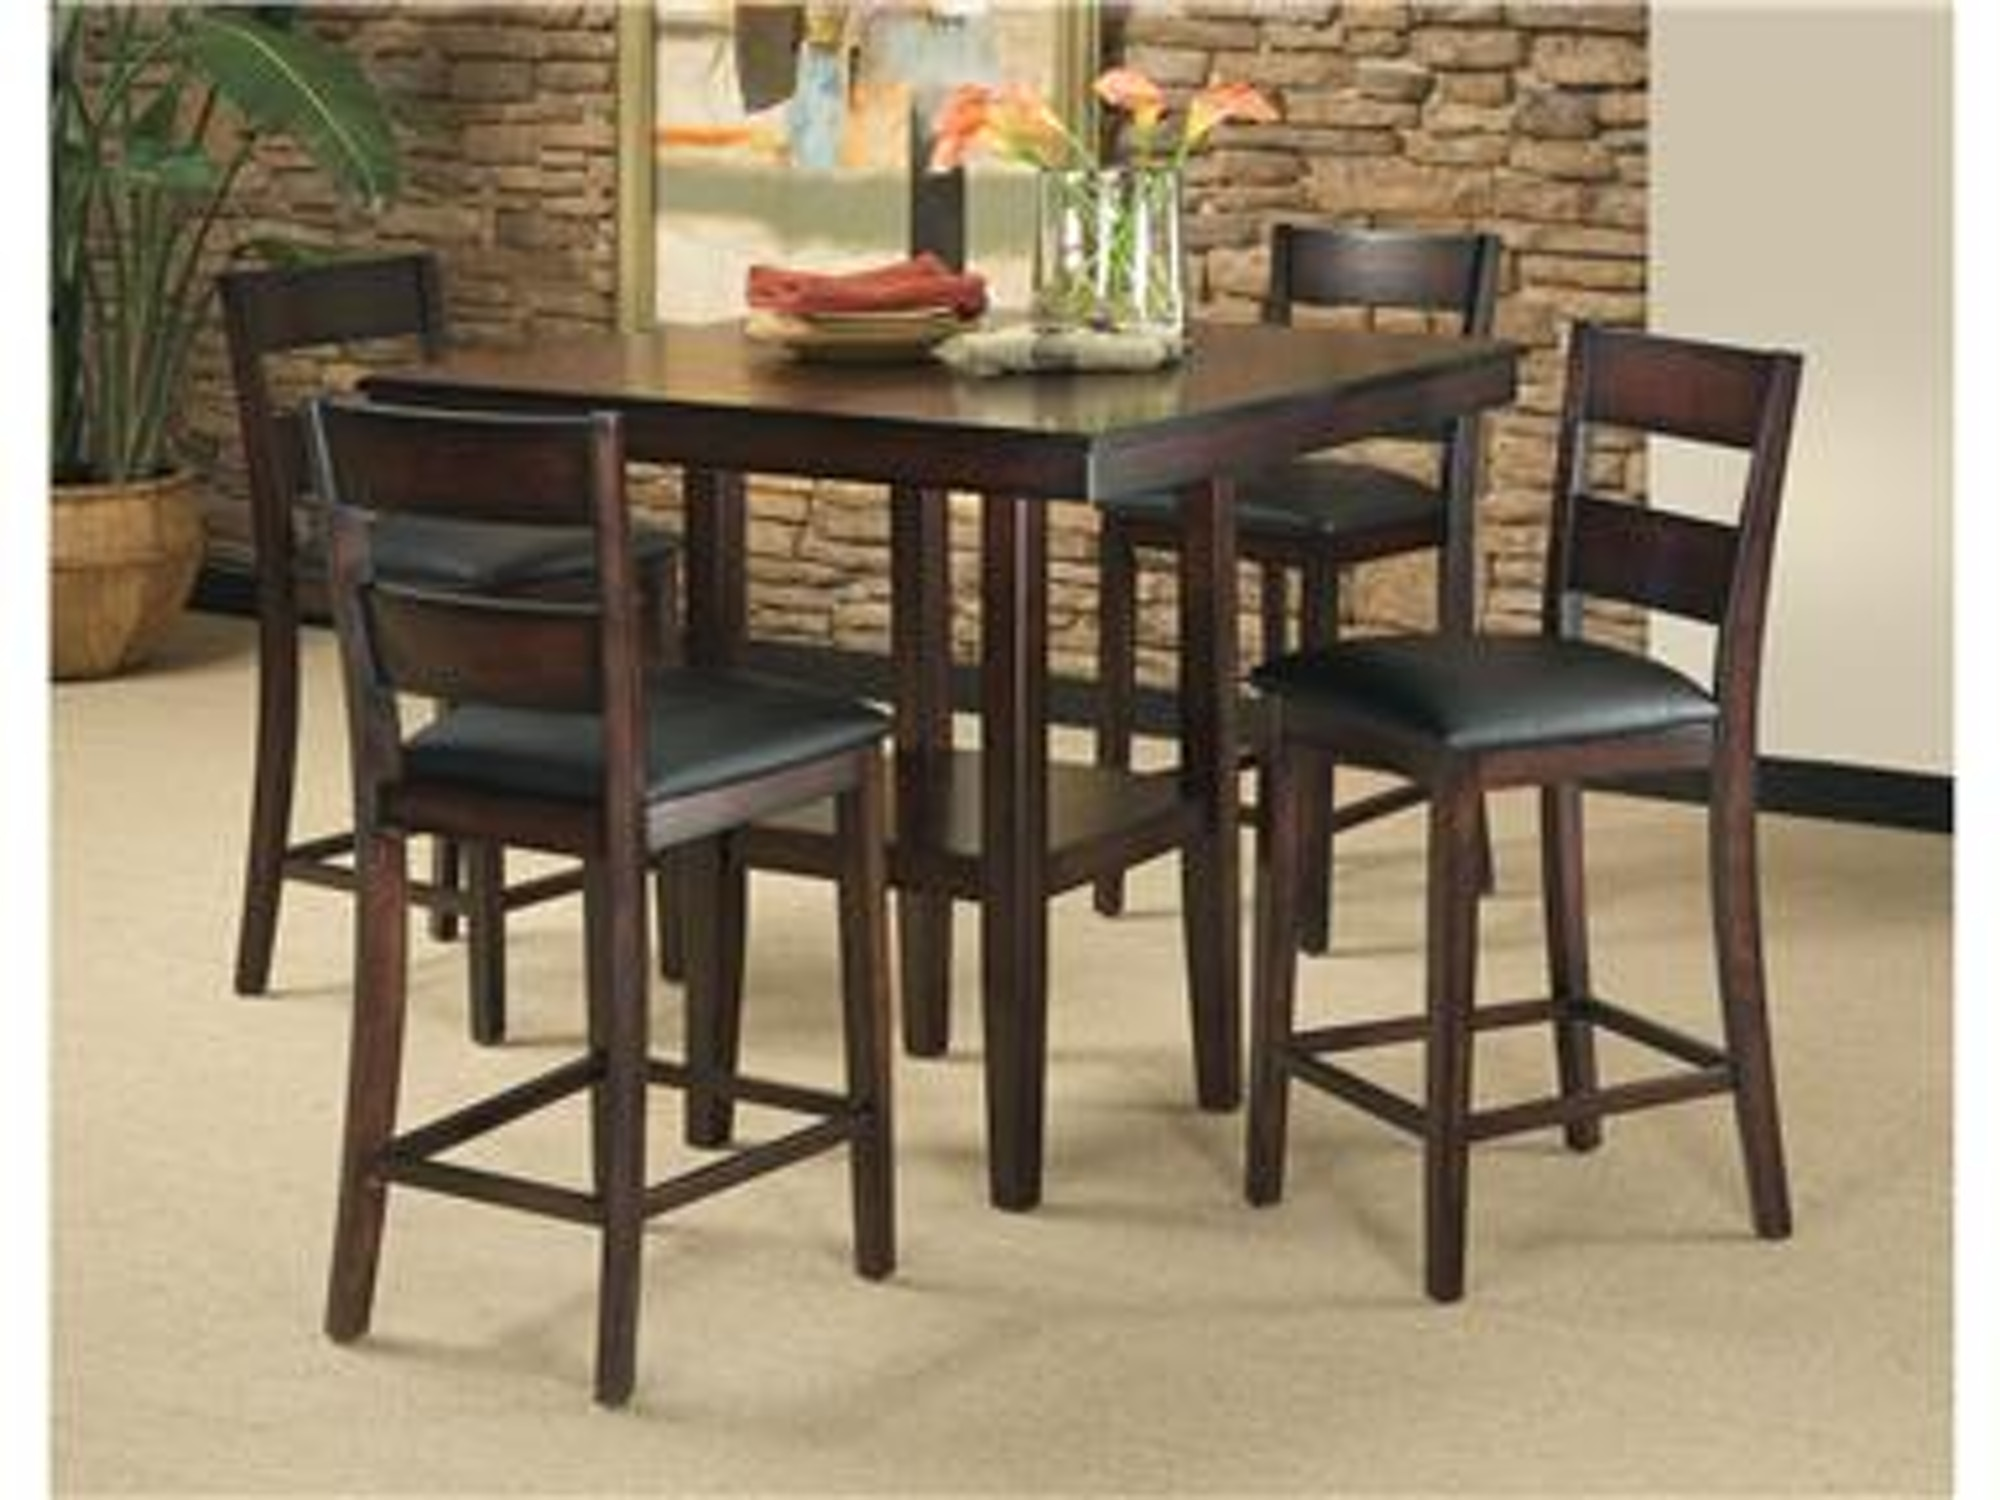 Dining room sets furniture fair cincinnati dayton oh for Furniture zanesville ohio